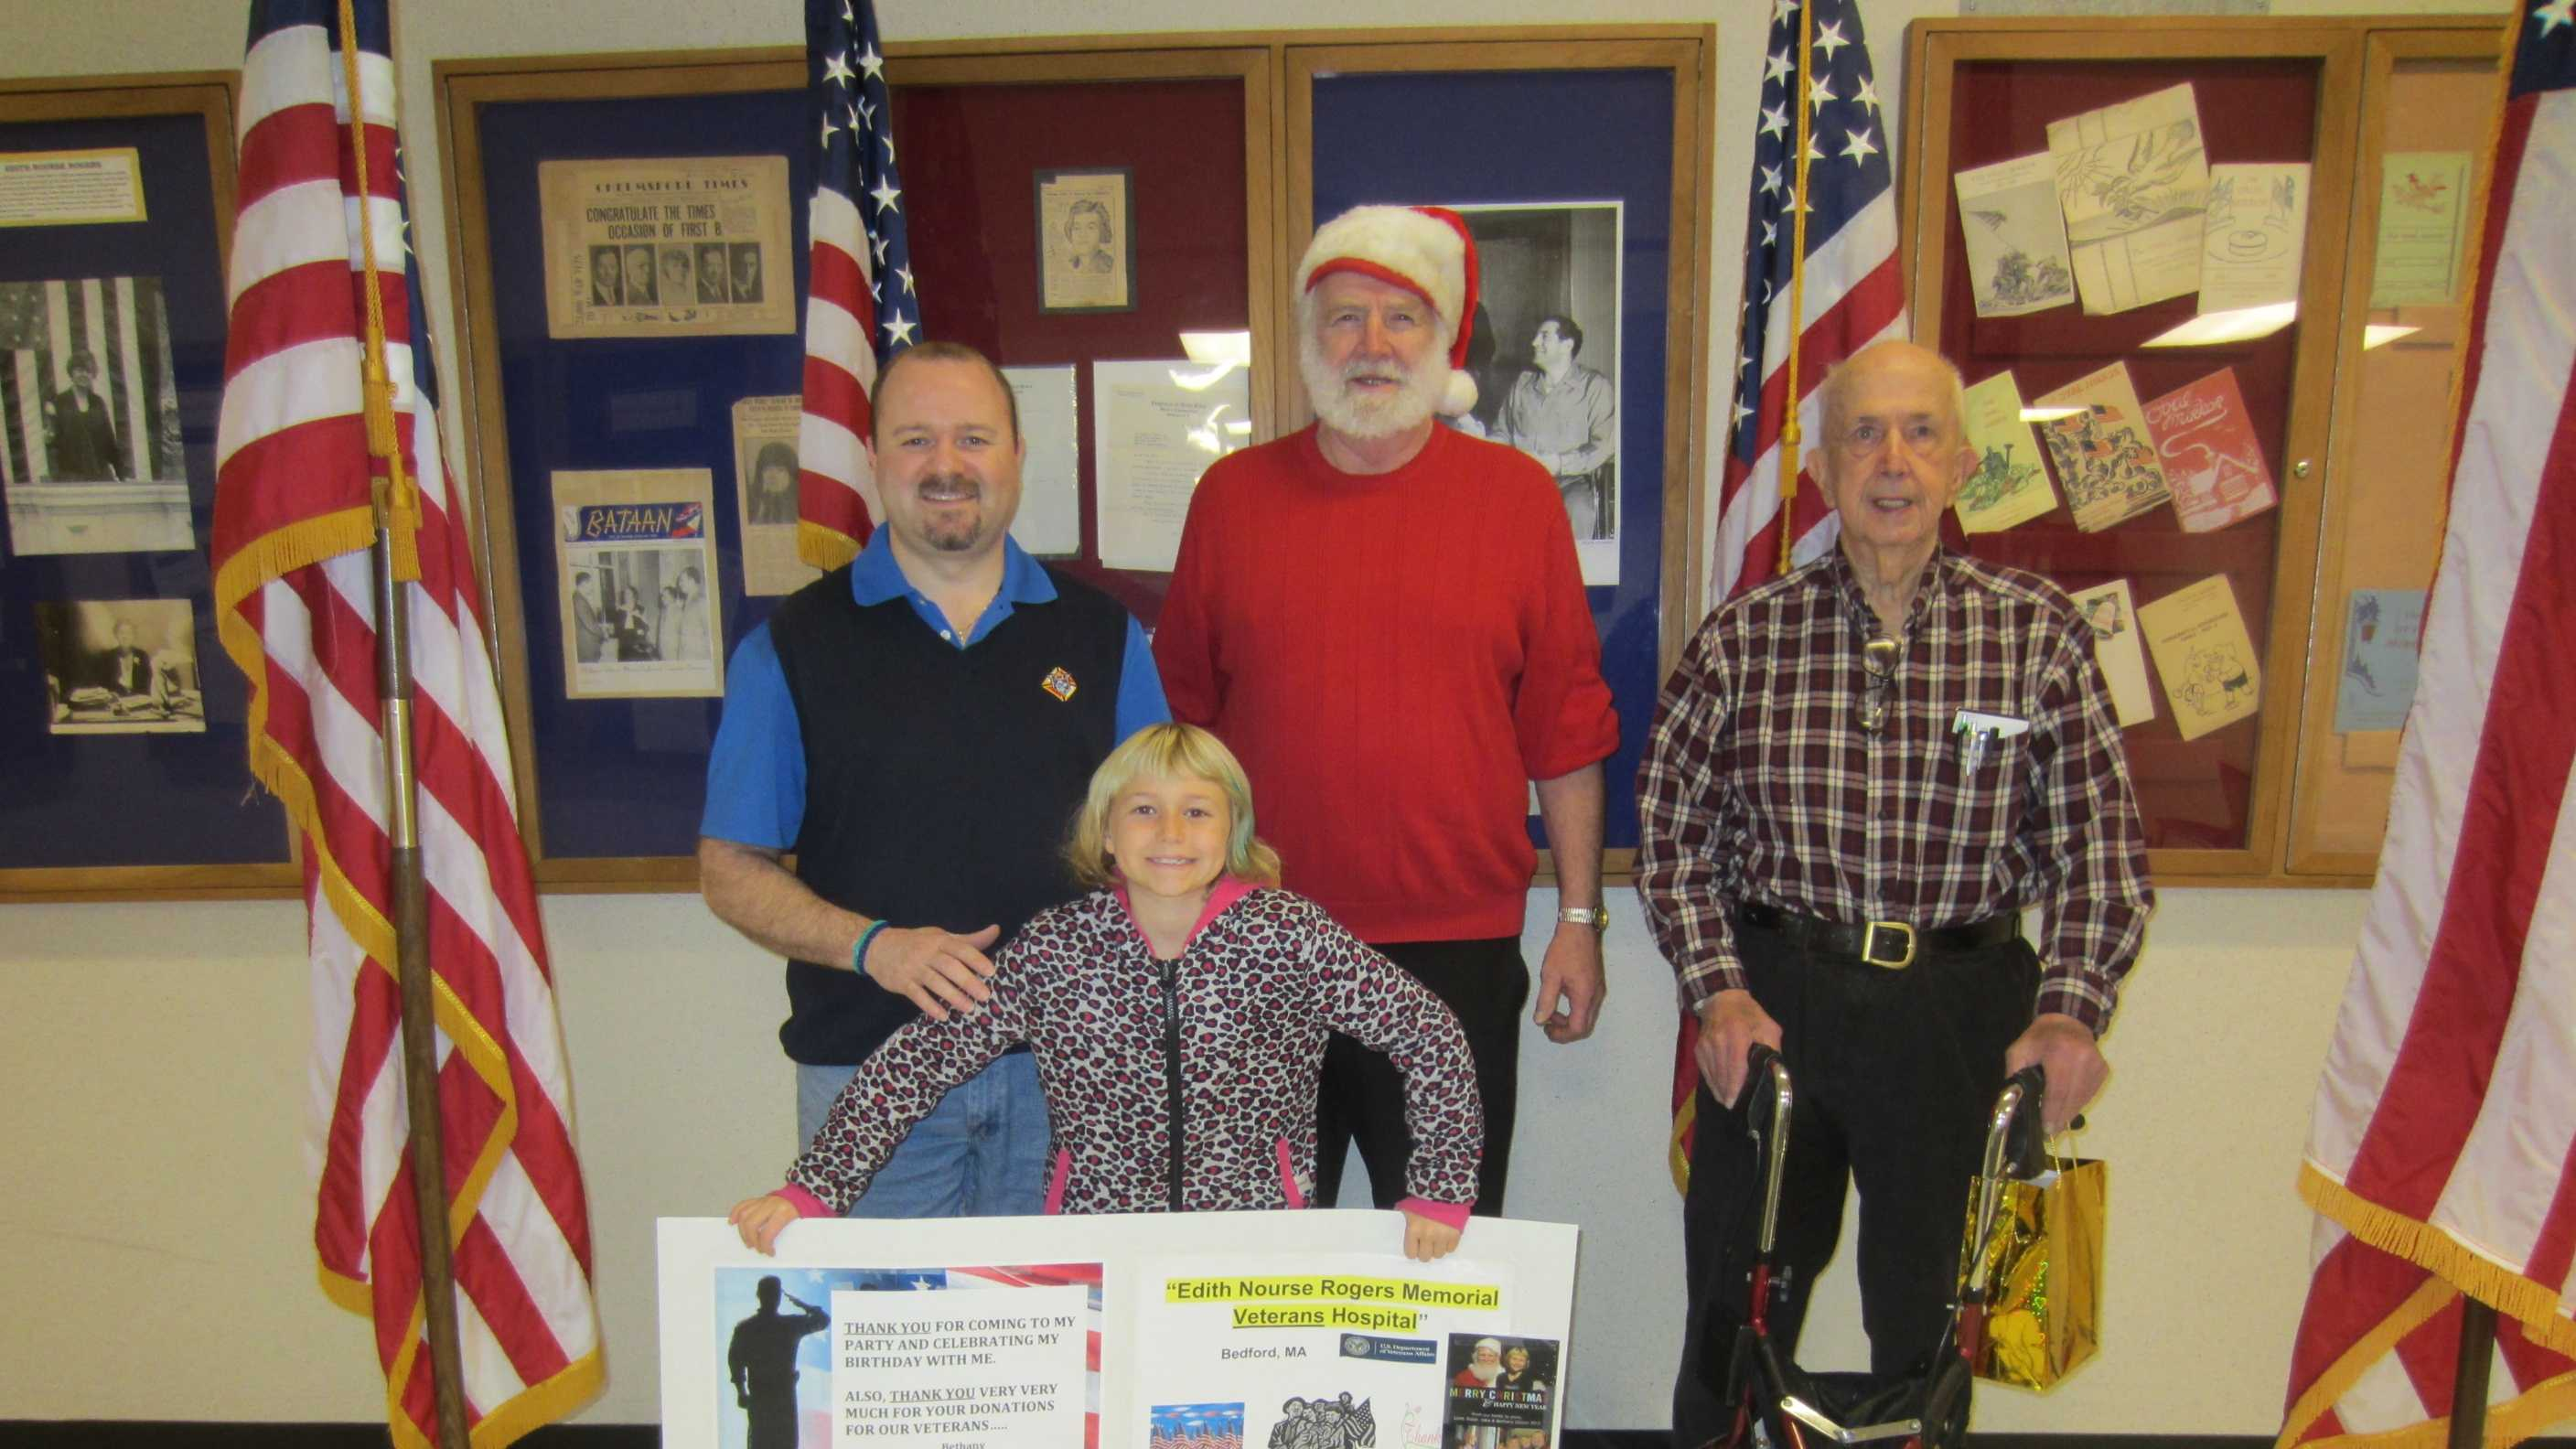 Mike and Bethany Gibson with Paul Harrington and  James Burke at the Bedford Veterans Hospital.